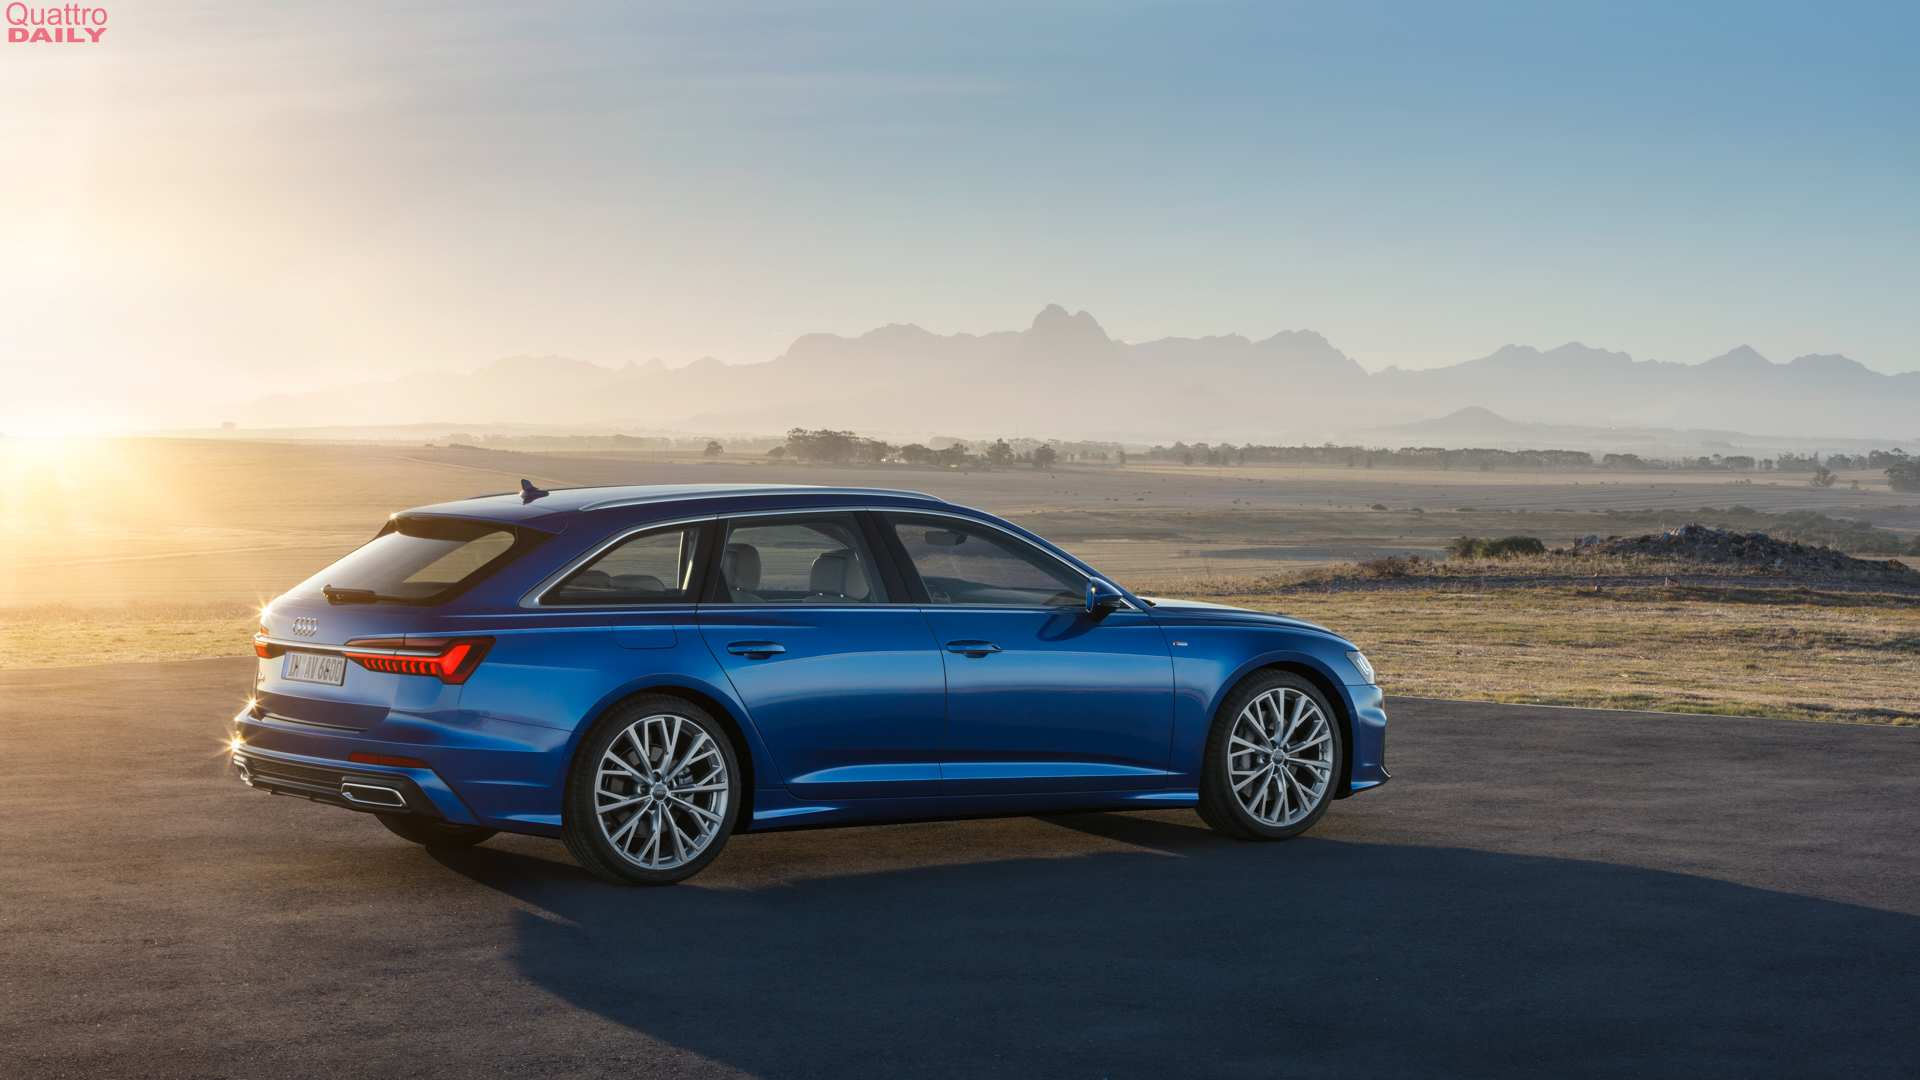 52 All New Audi Wagon 2020 Overview